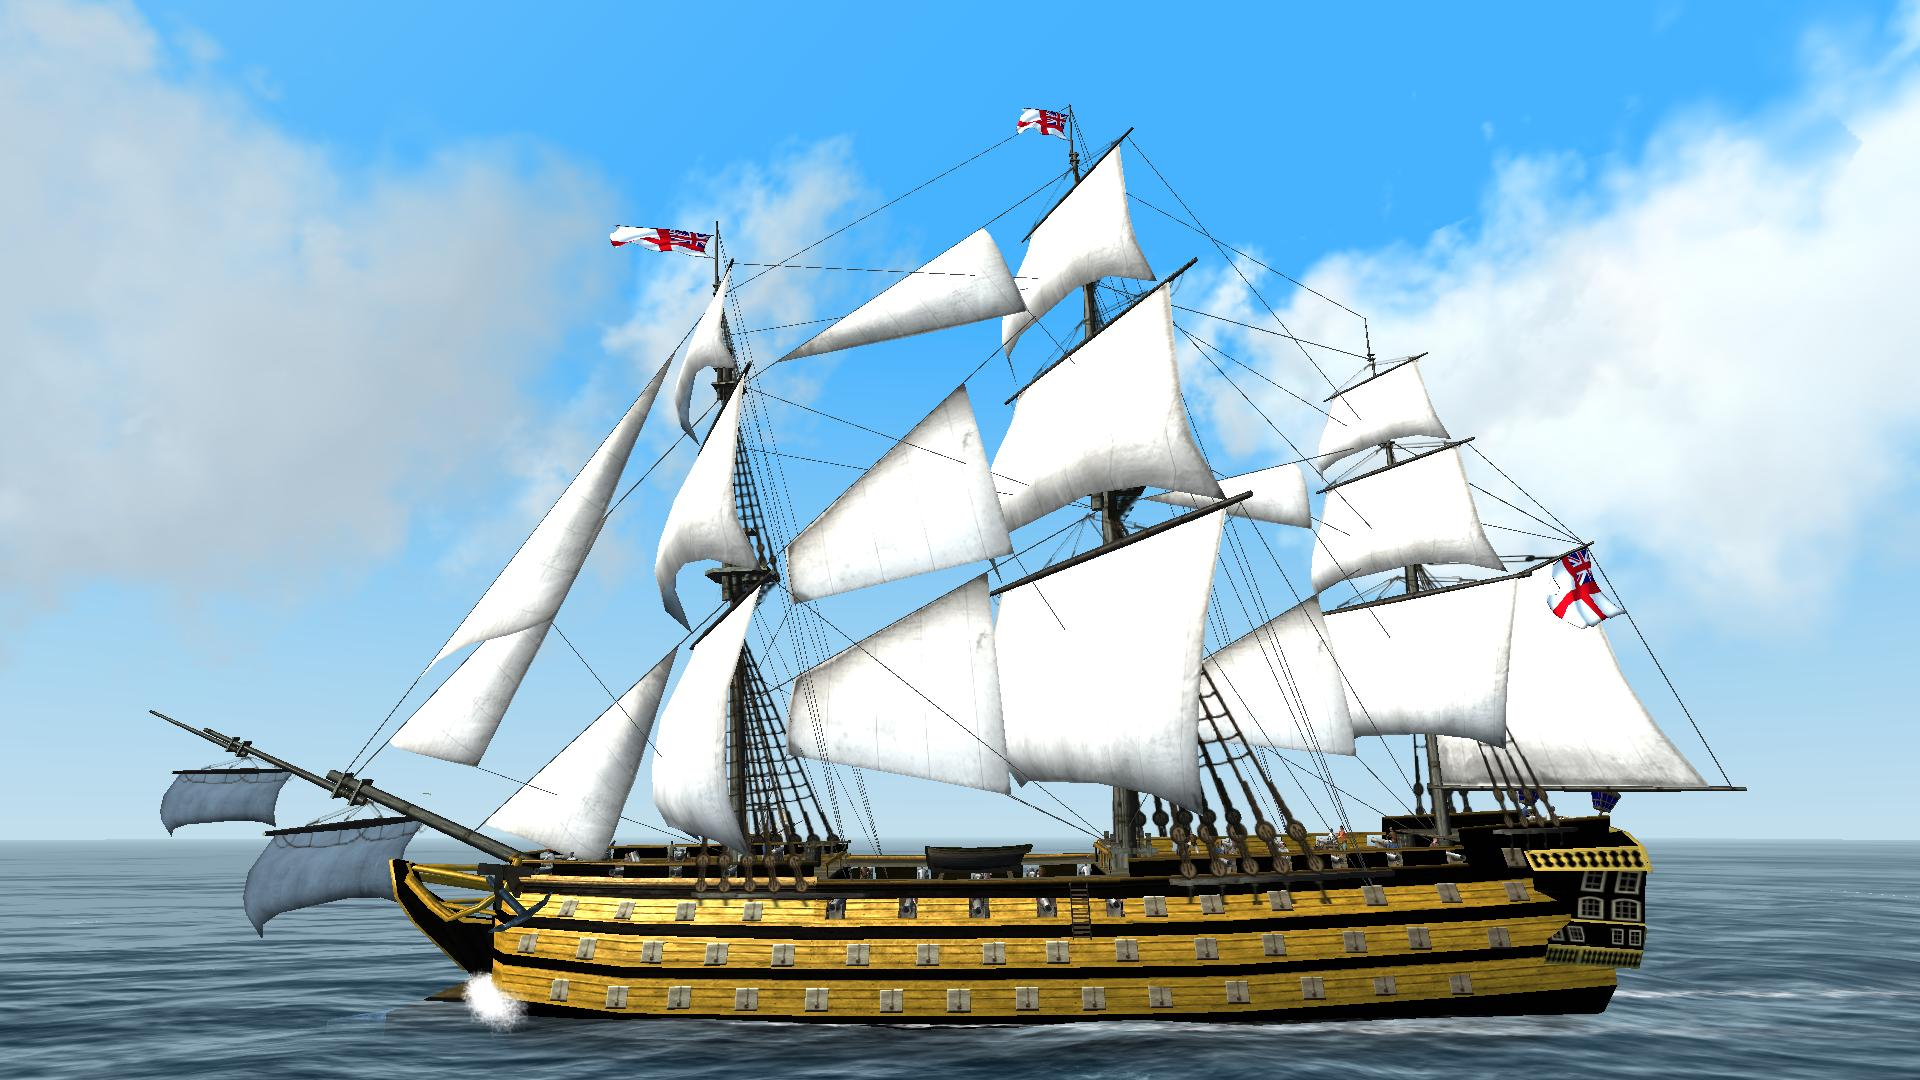 Largest Cargo Ship >> HMS Victory | HNG The Pirate Series Wiki | Fandom